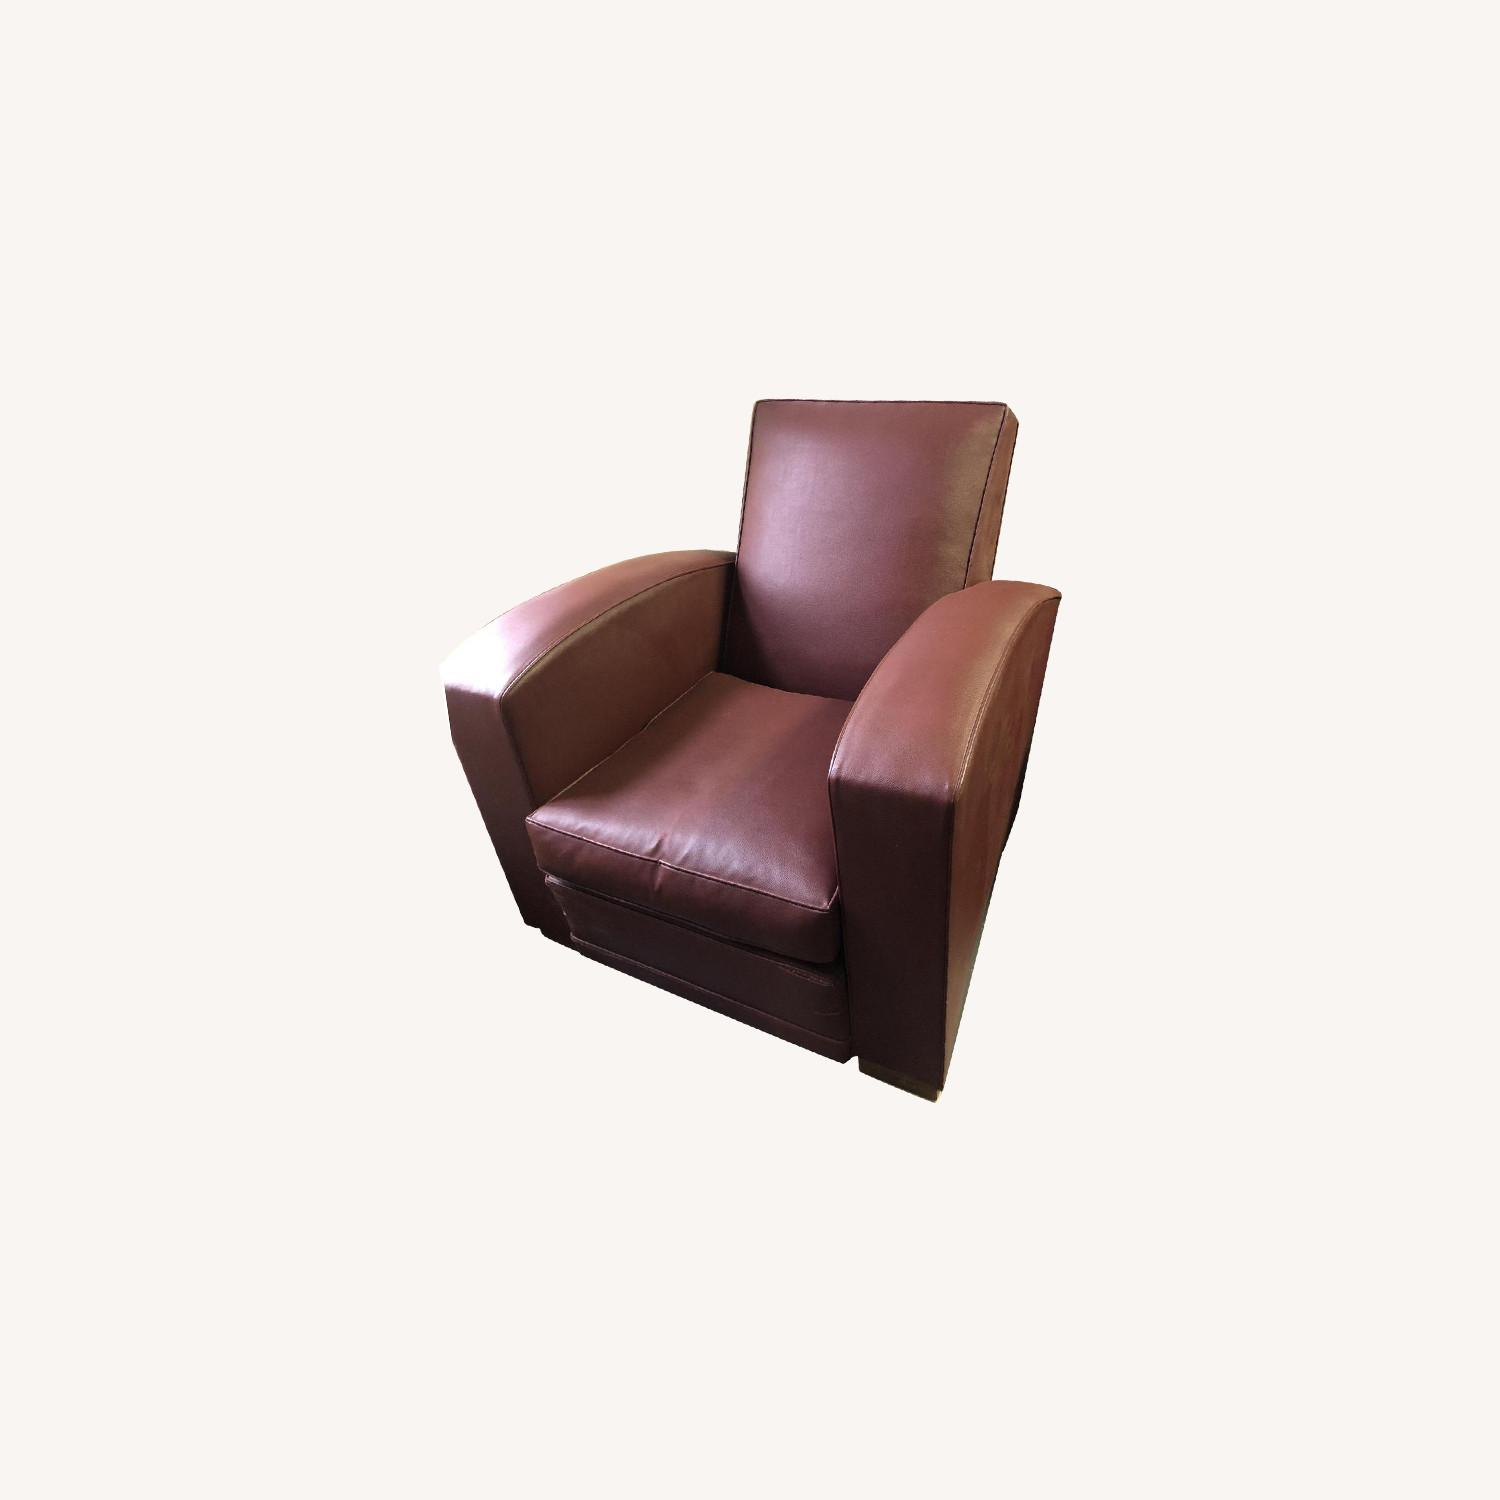 Vintage French Deco Club Chair - image-0